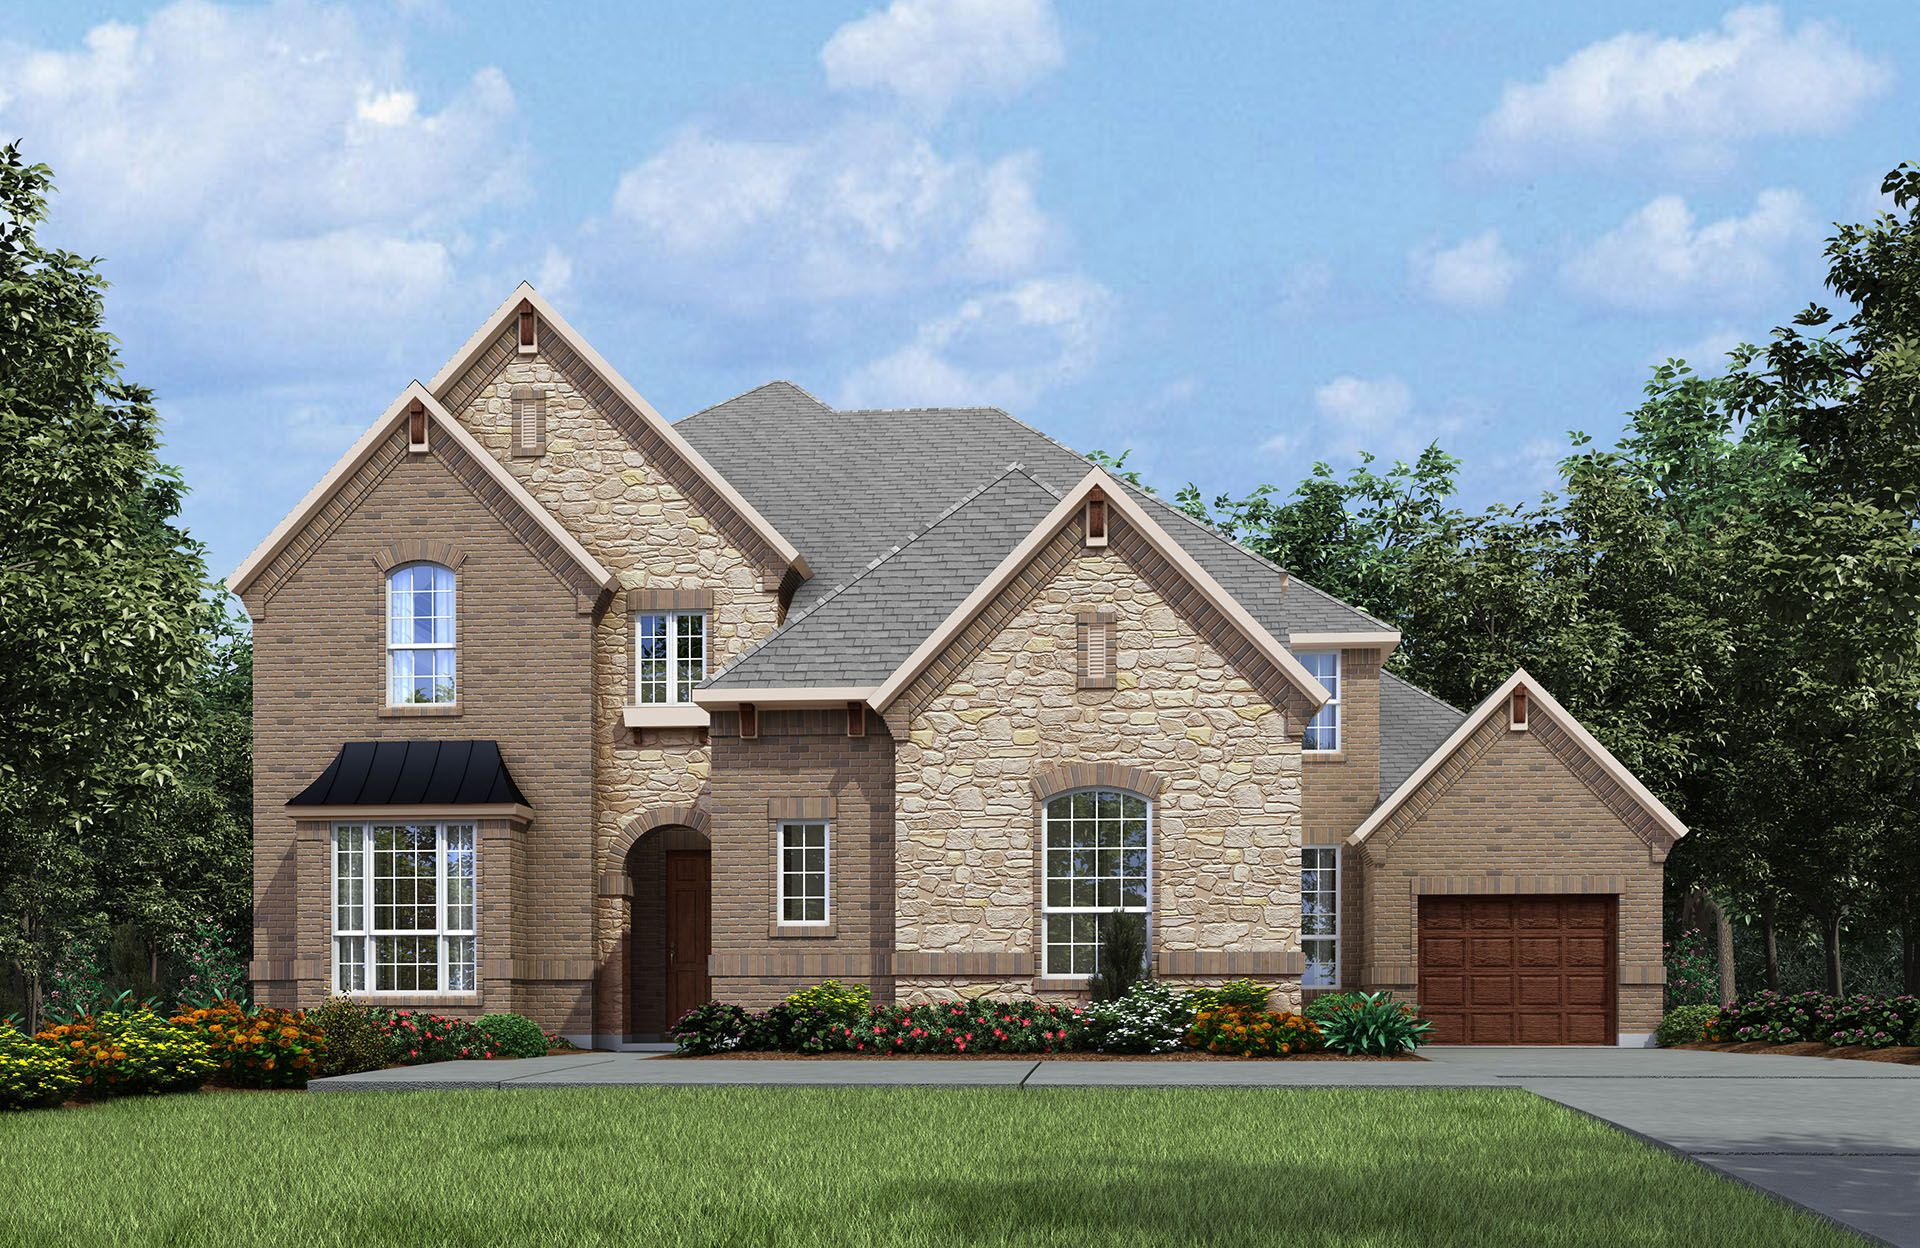 Single Family for Sale at Oakley Ii 4309 Lorion Drive Rockwall, Texas 75087 United States